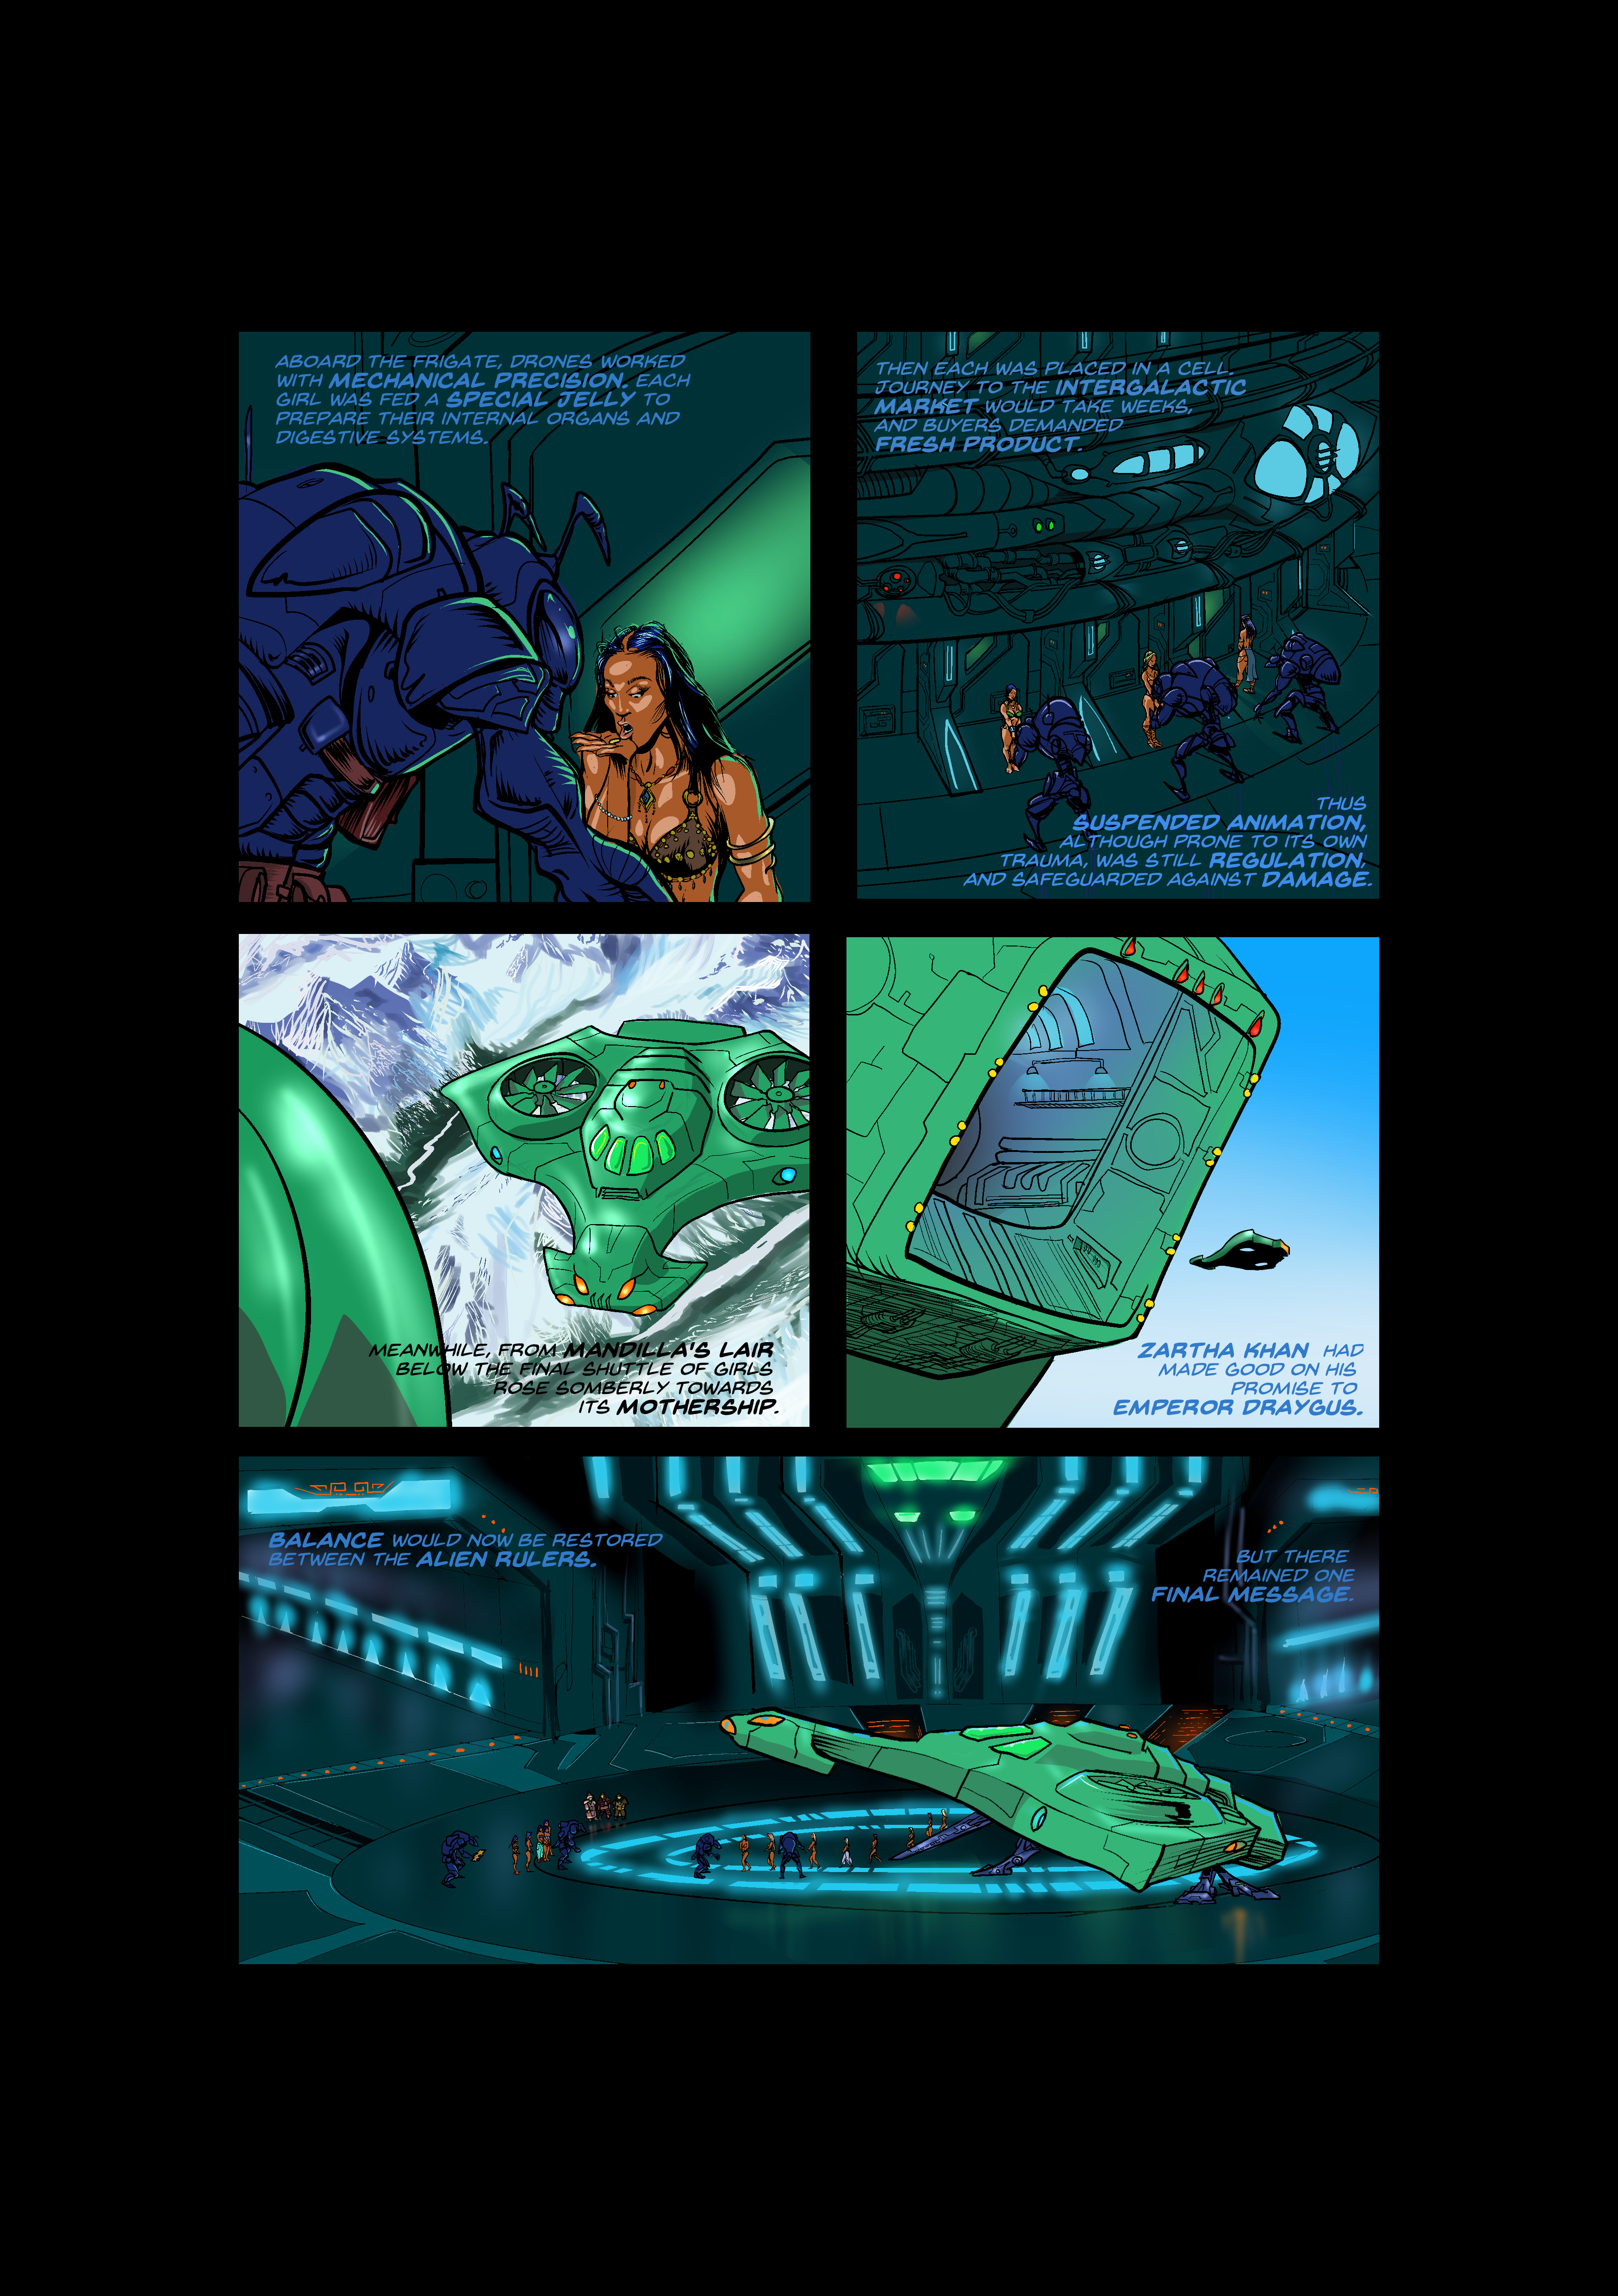 Prince of the Astral Kingdom chapter 2 pg 38